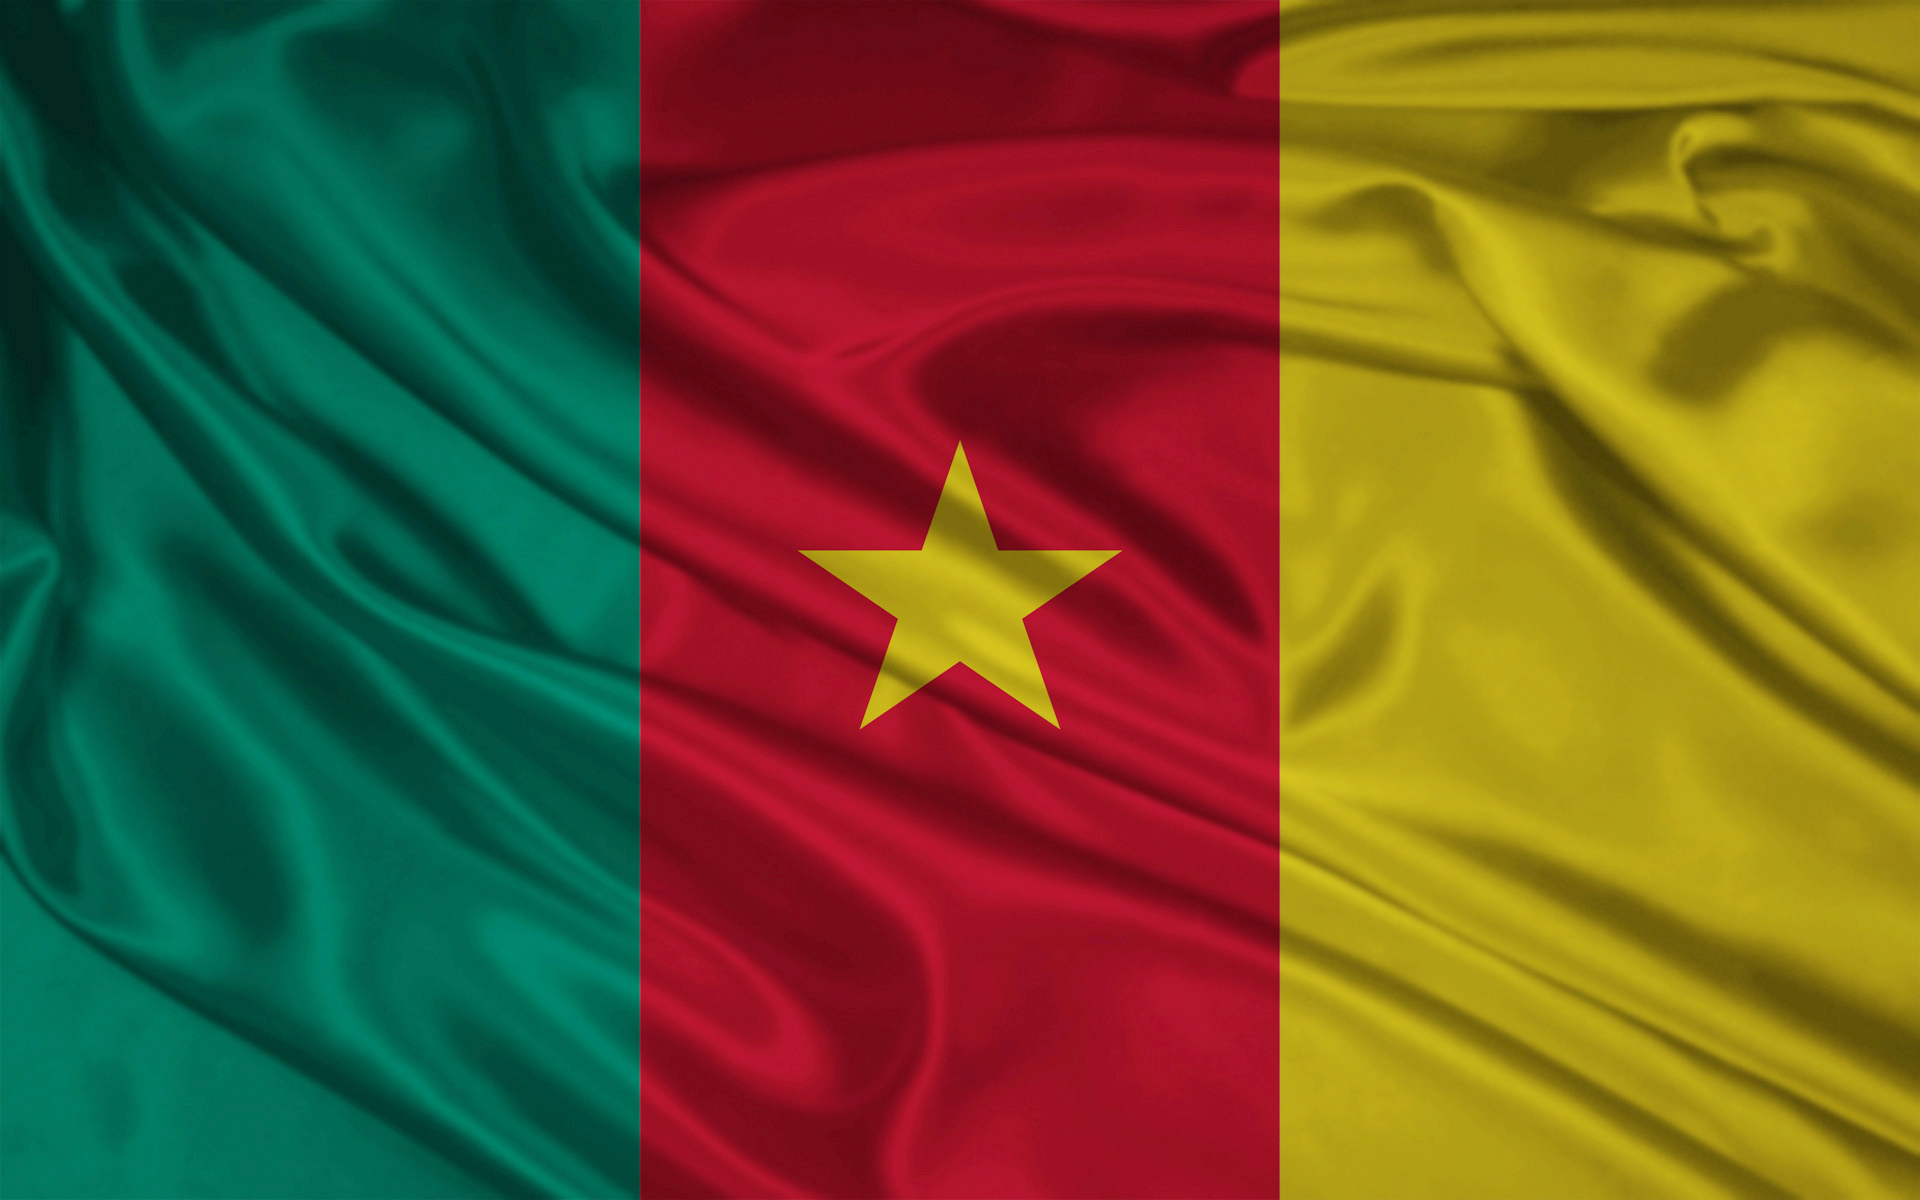 Lion Hd Wallpapers For Iphone Kamerun Flagge Hintergrundbilder Kamerun Flagge Frei Fotos